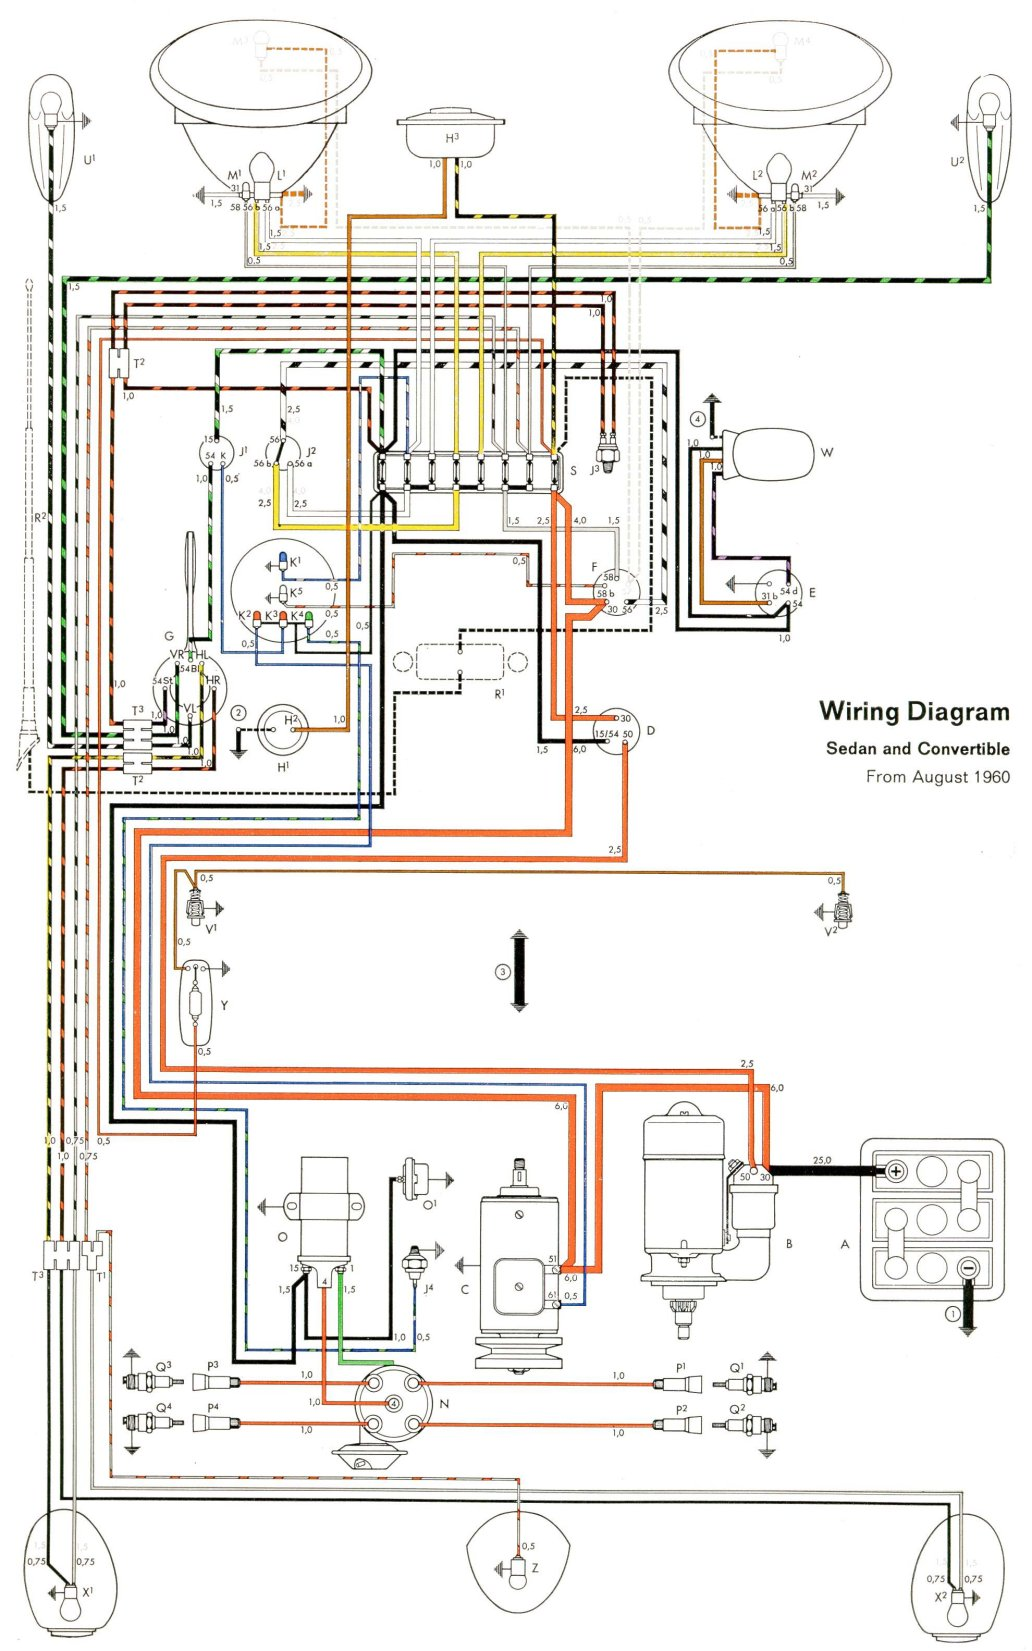 73 Beetle Fuse Diagram - 1984 Maserati Biturbo Wiring Diagram for Wiring  Diagram SchematicsWiring Diagram Schematics